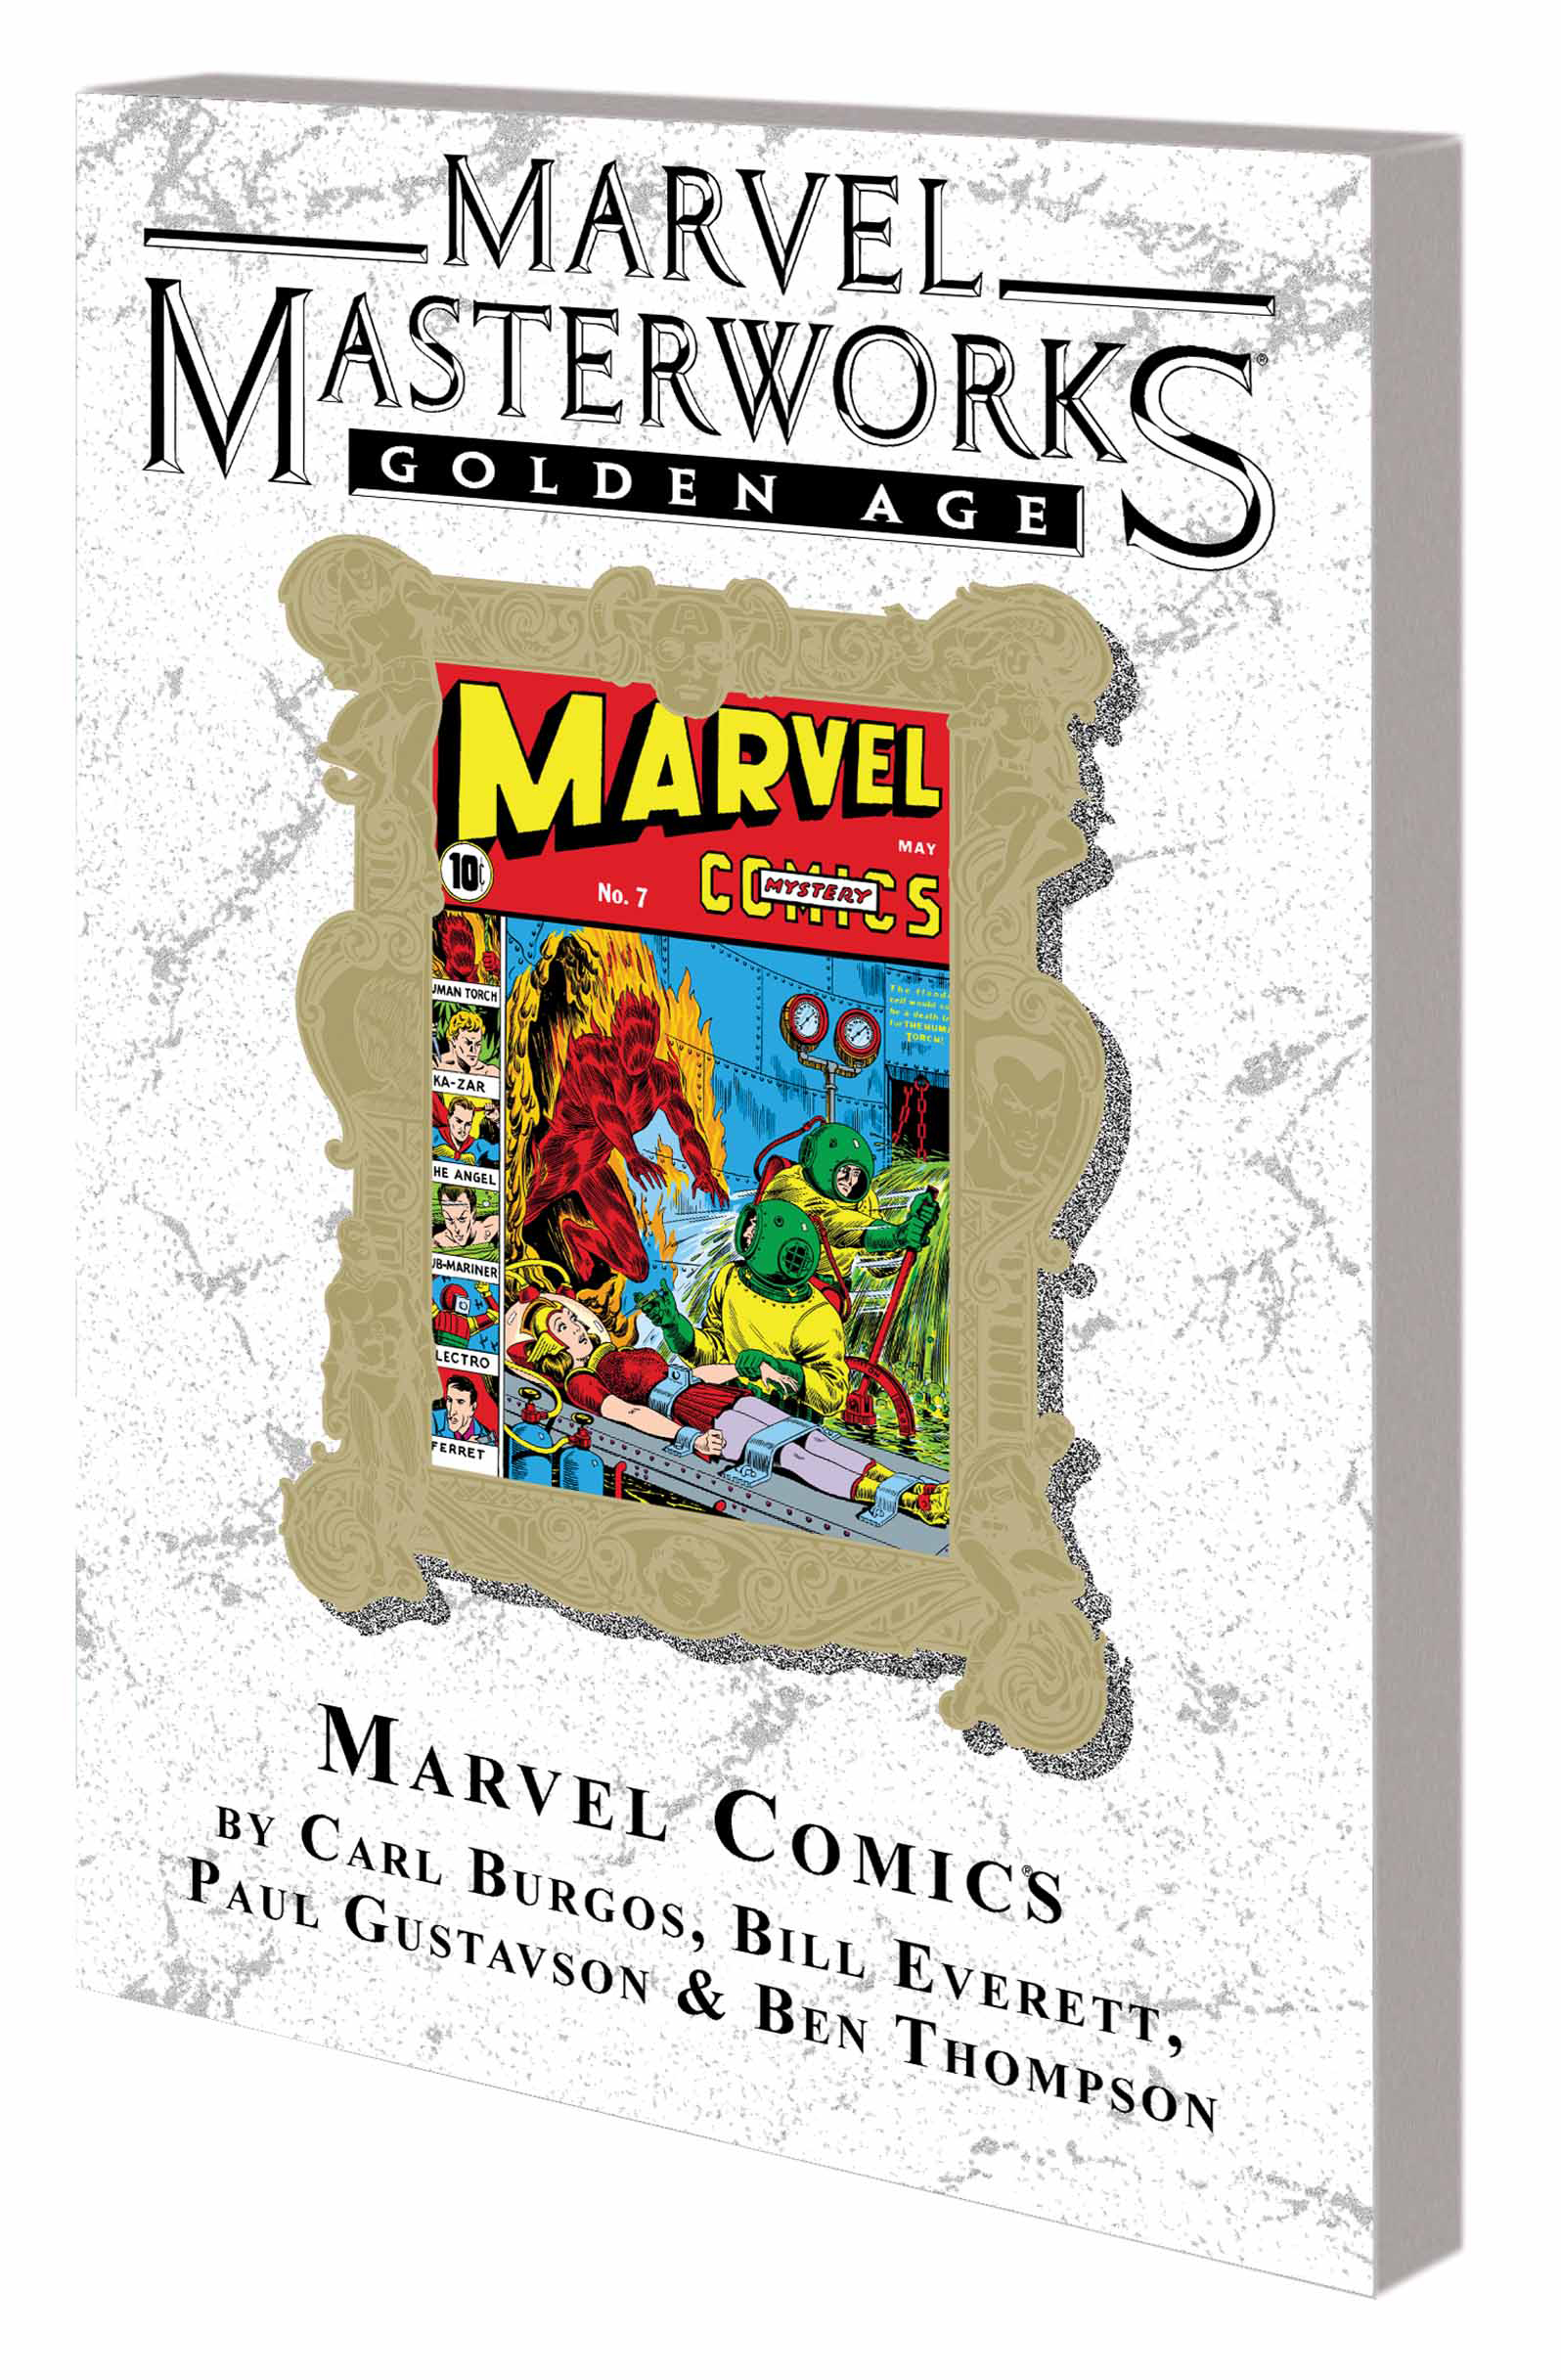 MMW GOLDEN AGE MARVEL COMICS TP VOL 02 DM VAR ED 60